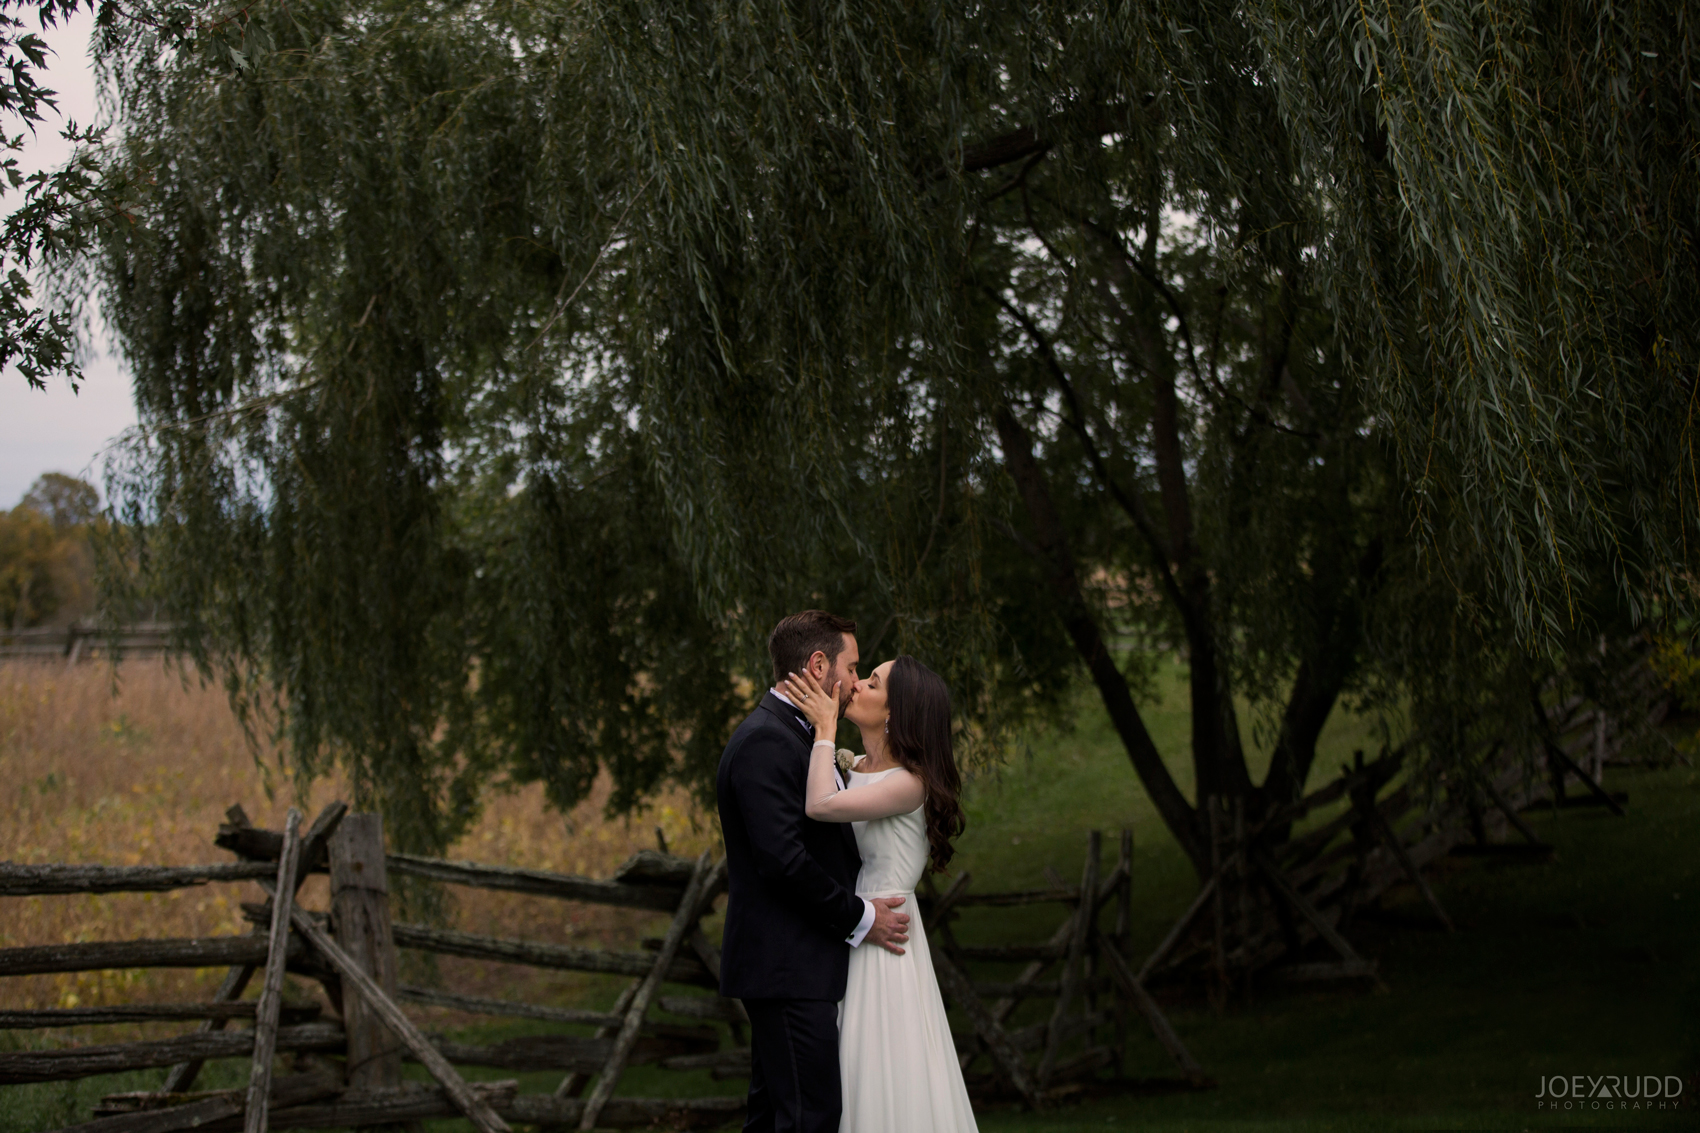 Evermore Wedding, Evermore Wedding and Events, Ottawa Wedding, Almonte Wedding, Ottawa Photographer, Wedding Photography, Wedding Photographer, Joey Rudd Photography, Farm Wedding, Rustic Wedding, Barn Wedding Venue, Wedding Venue, Ottawa Wedding Venue, Almonte Riverside Inn, Candid, kiss